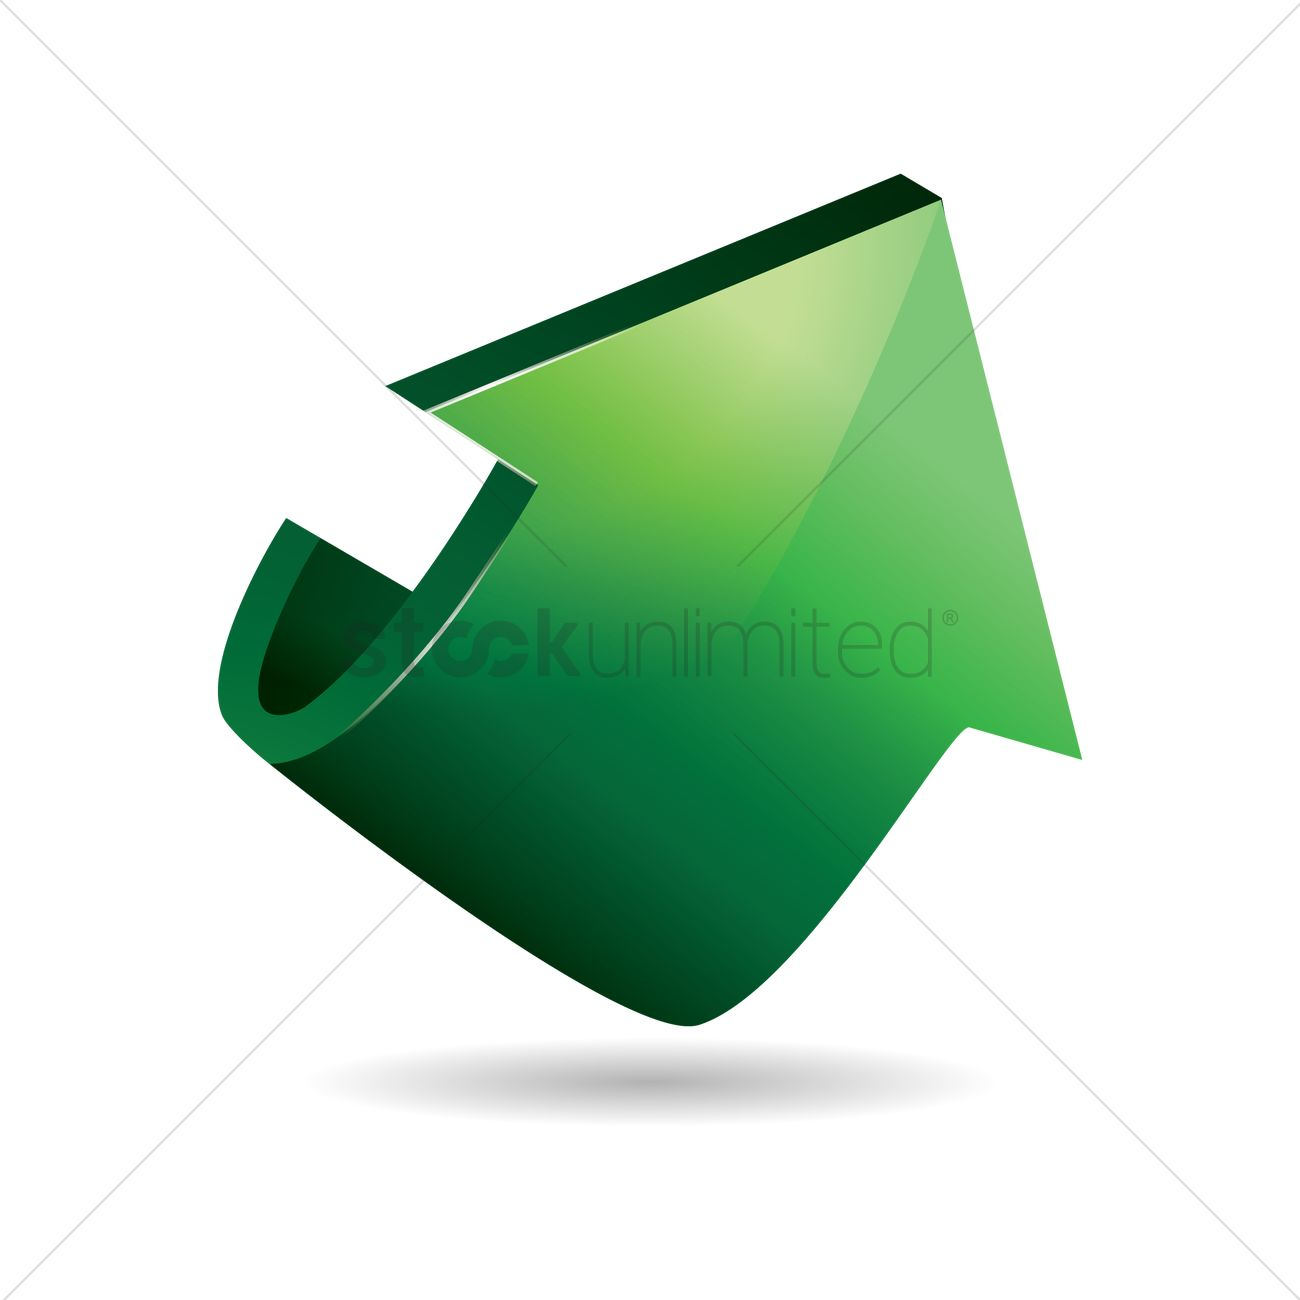 arrow pointing up vector image 1869921 stockunlimited